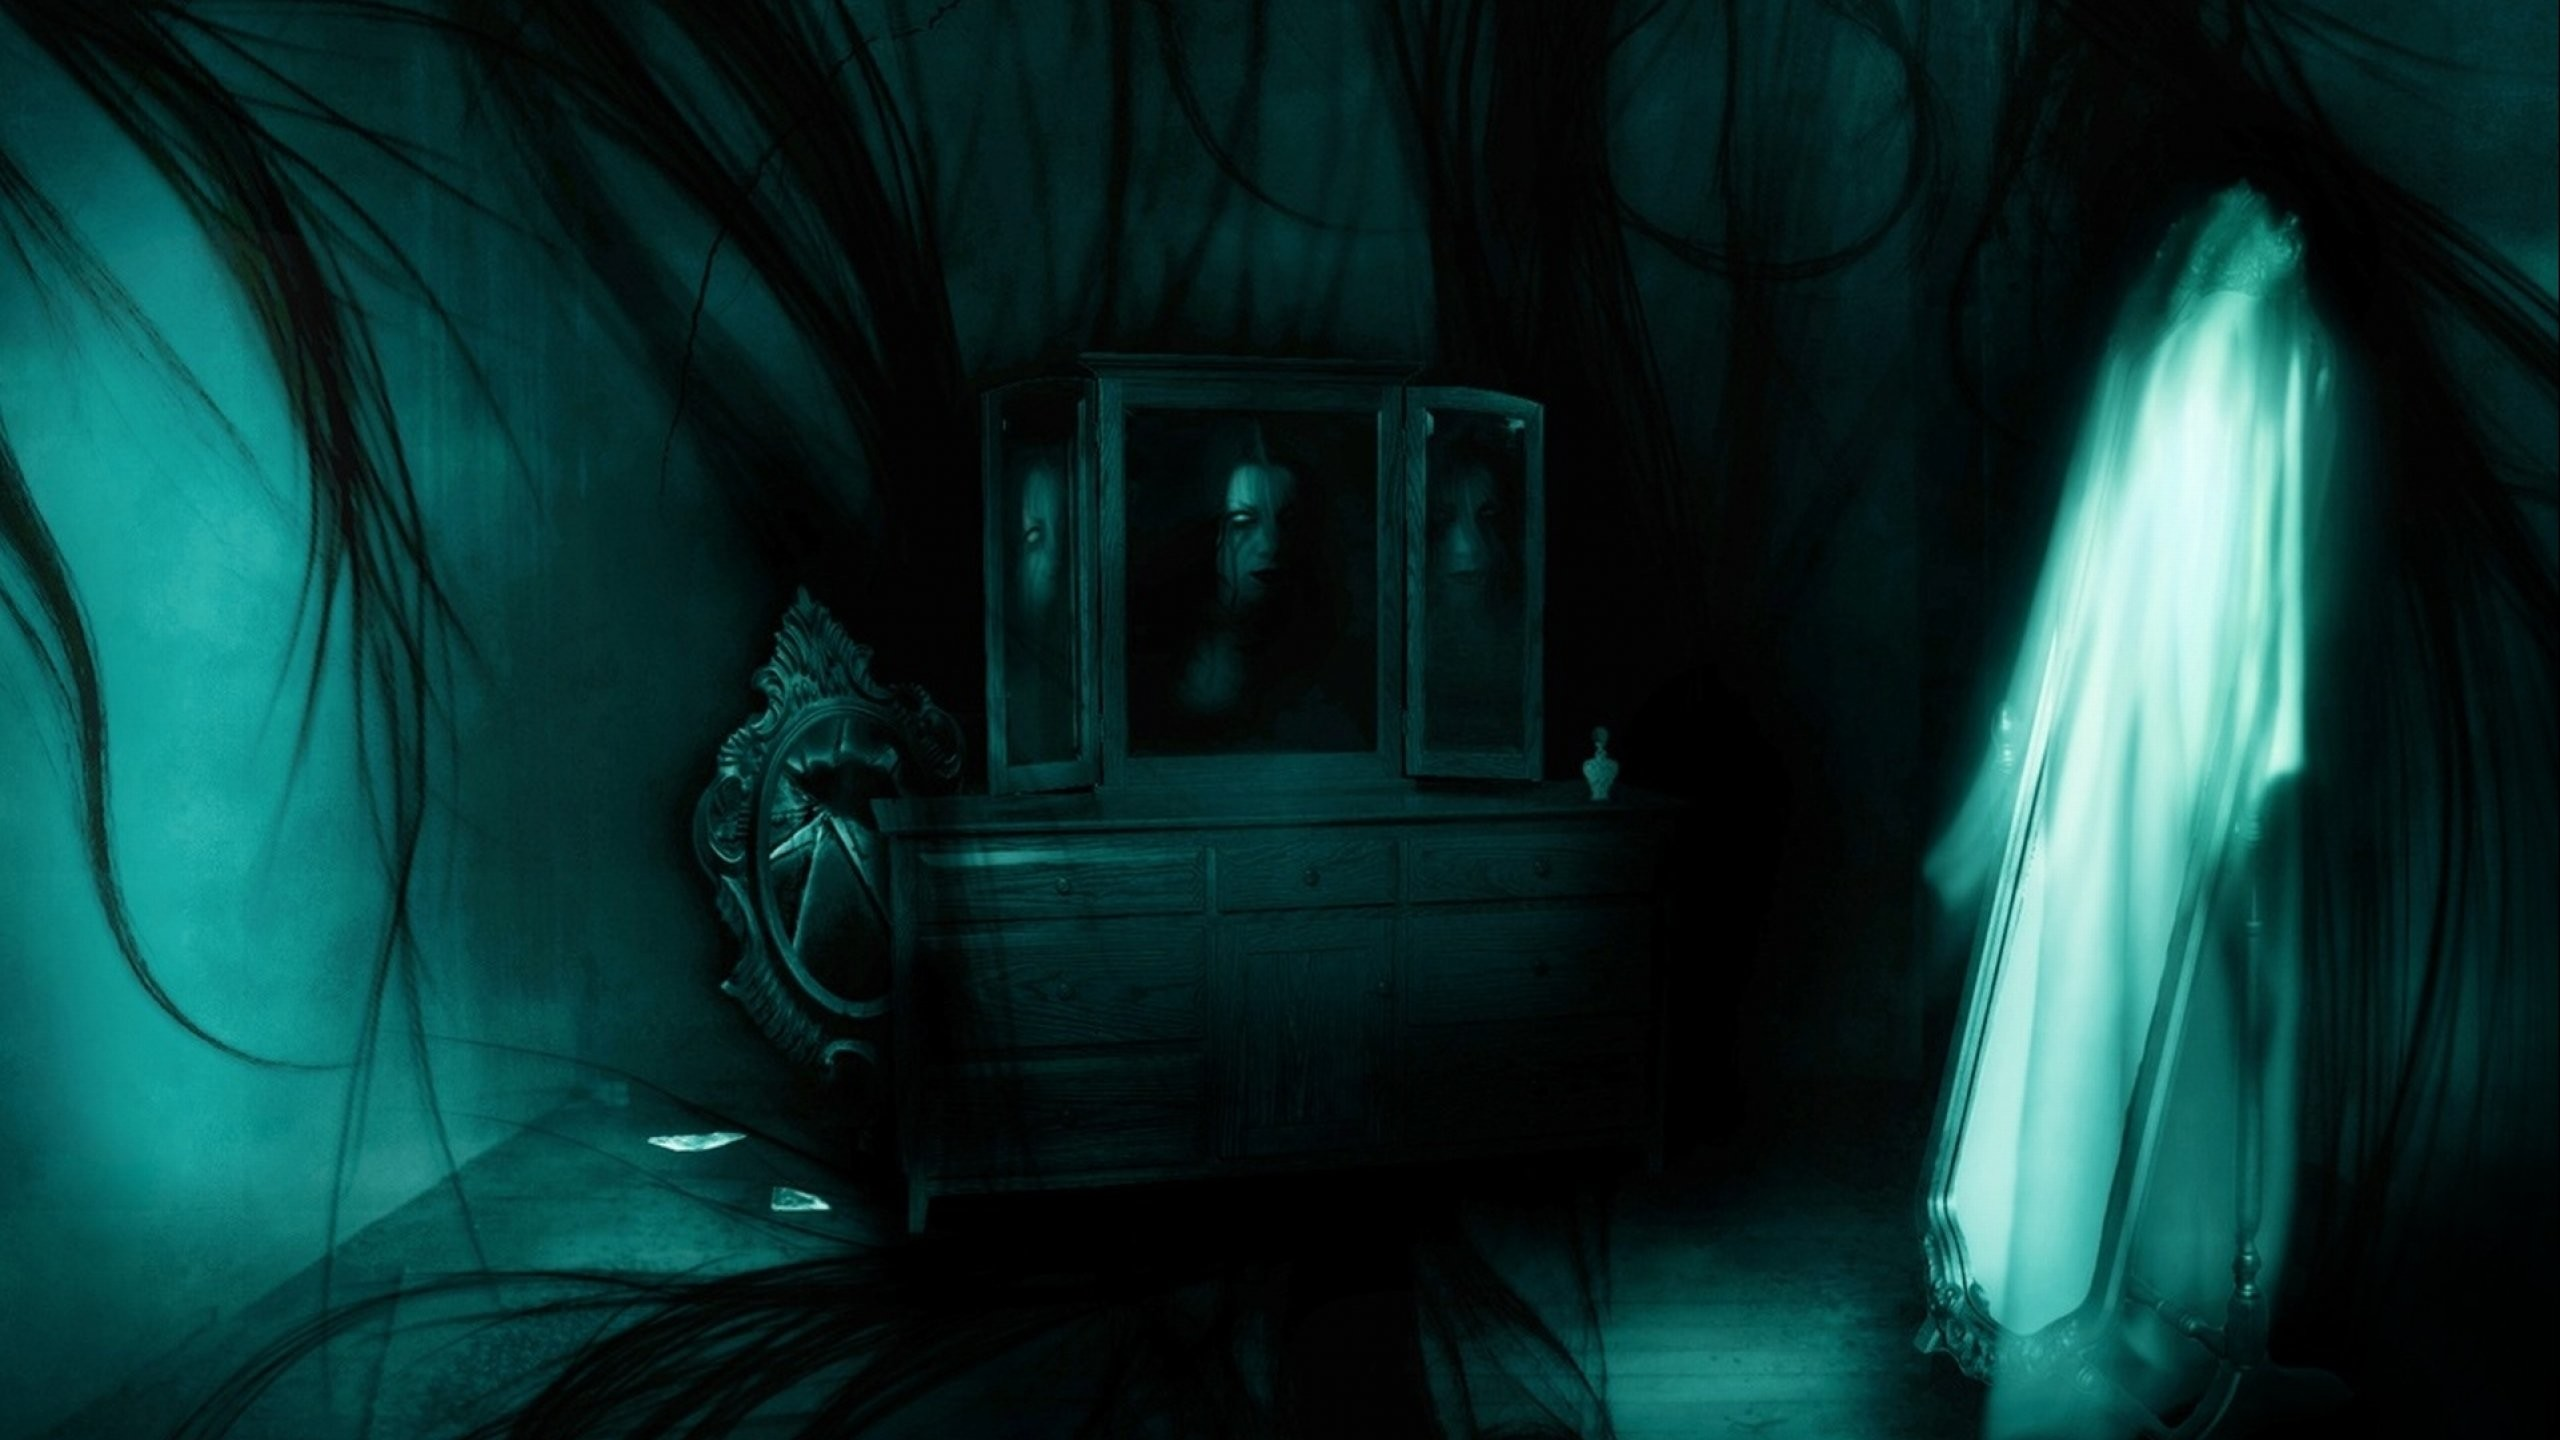 Horror Movie Wallpapers Wallpapertag: Gothic Horror Wallpaper ·① WallpaperTag